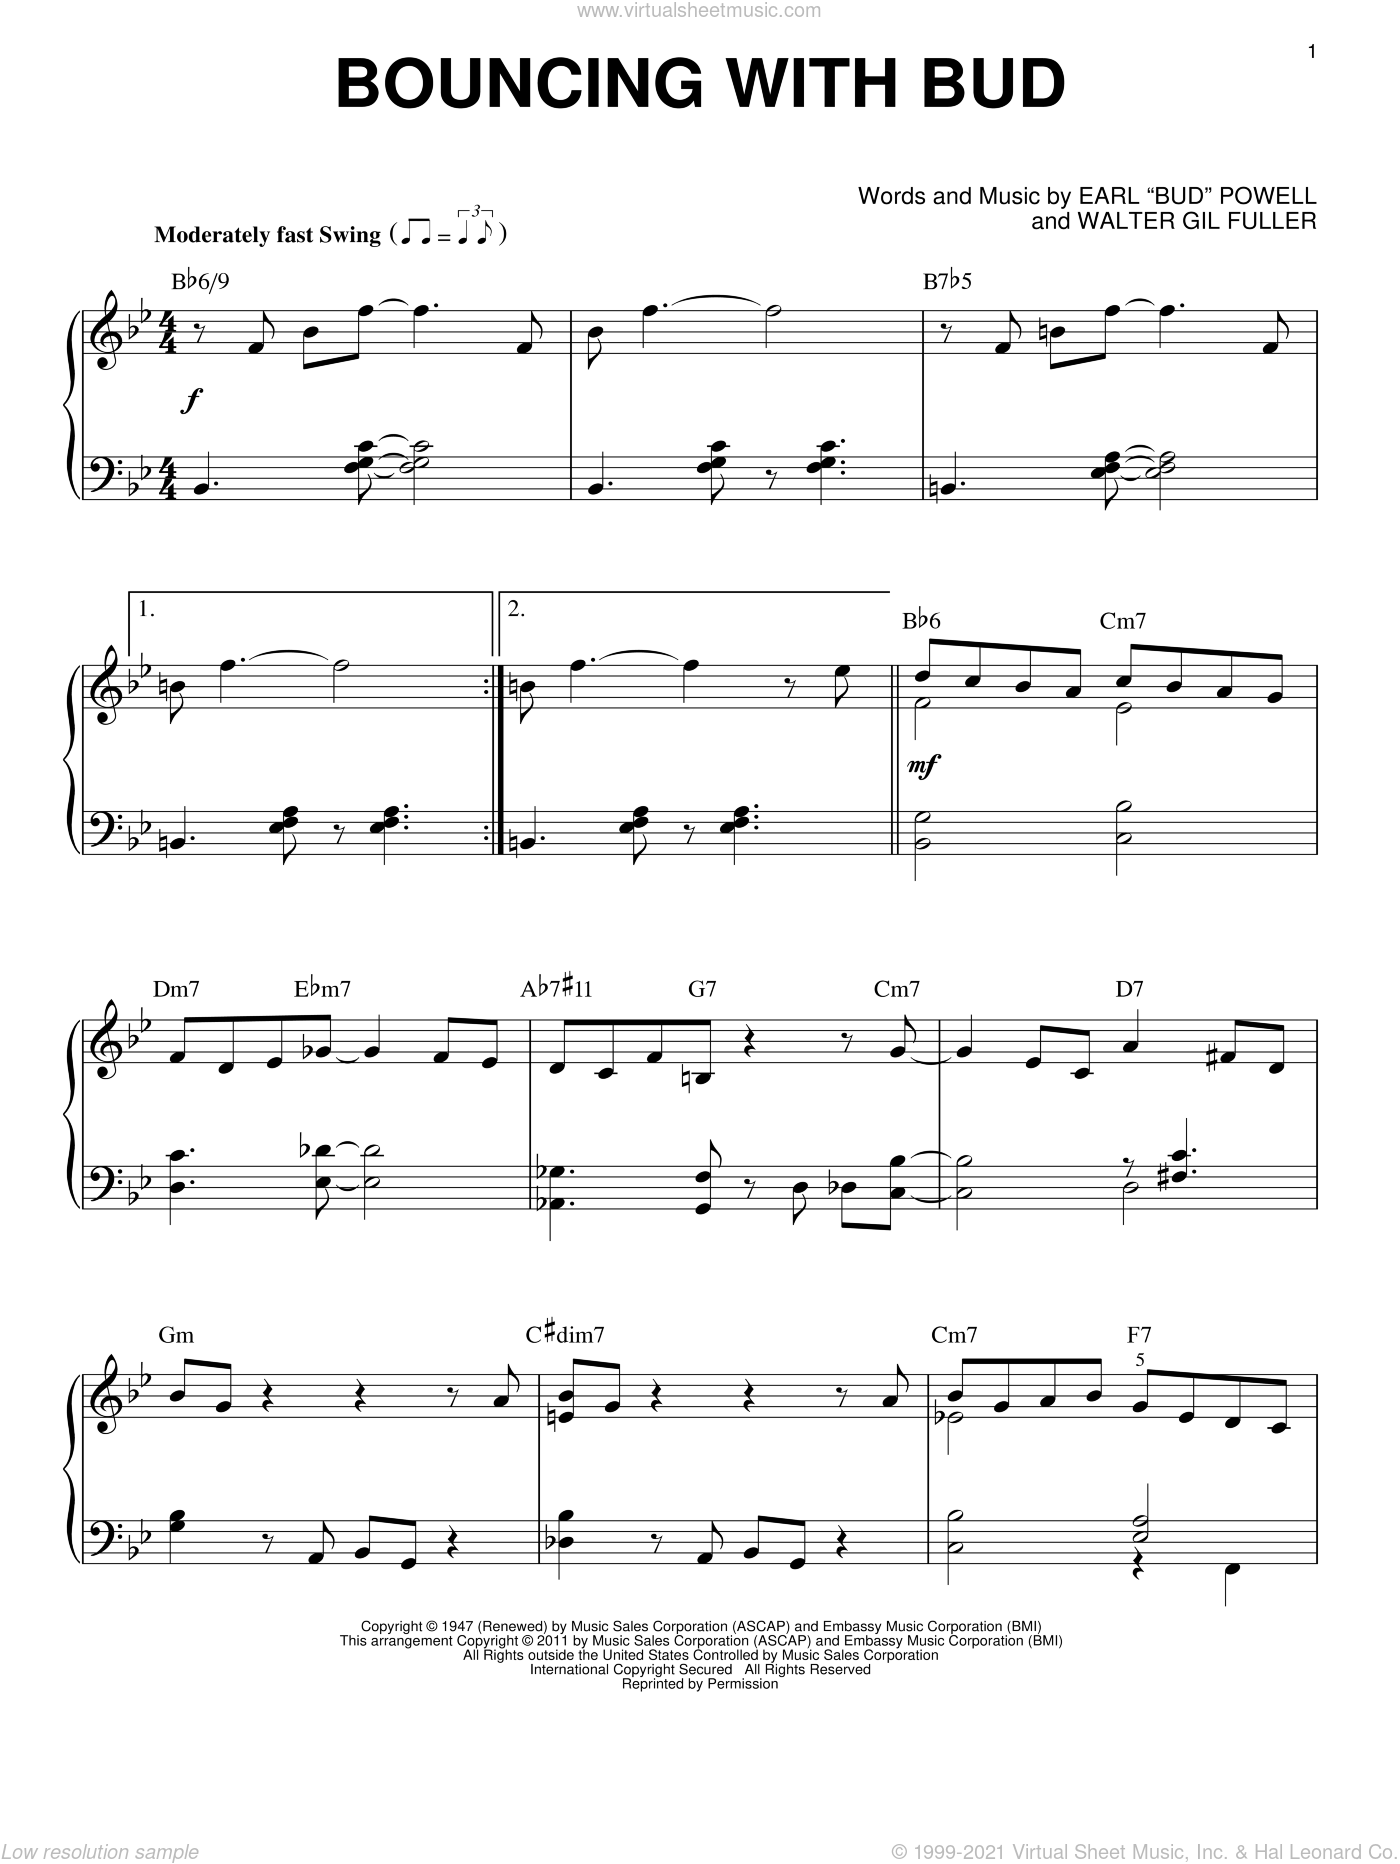 Bouncing With Bud sheet music for piano solo by Walter Gil Fuller